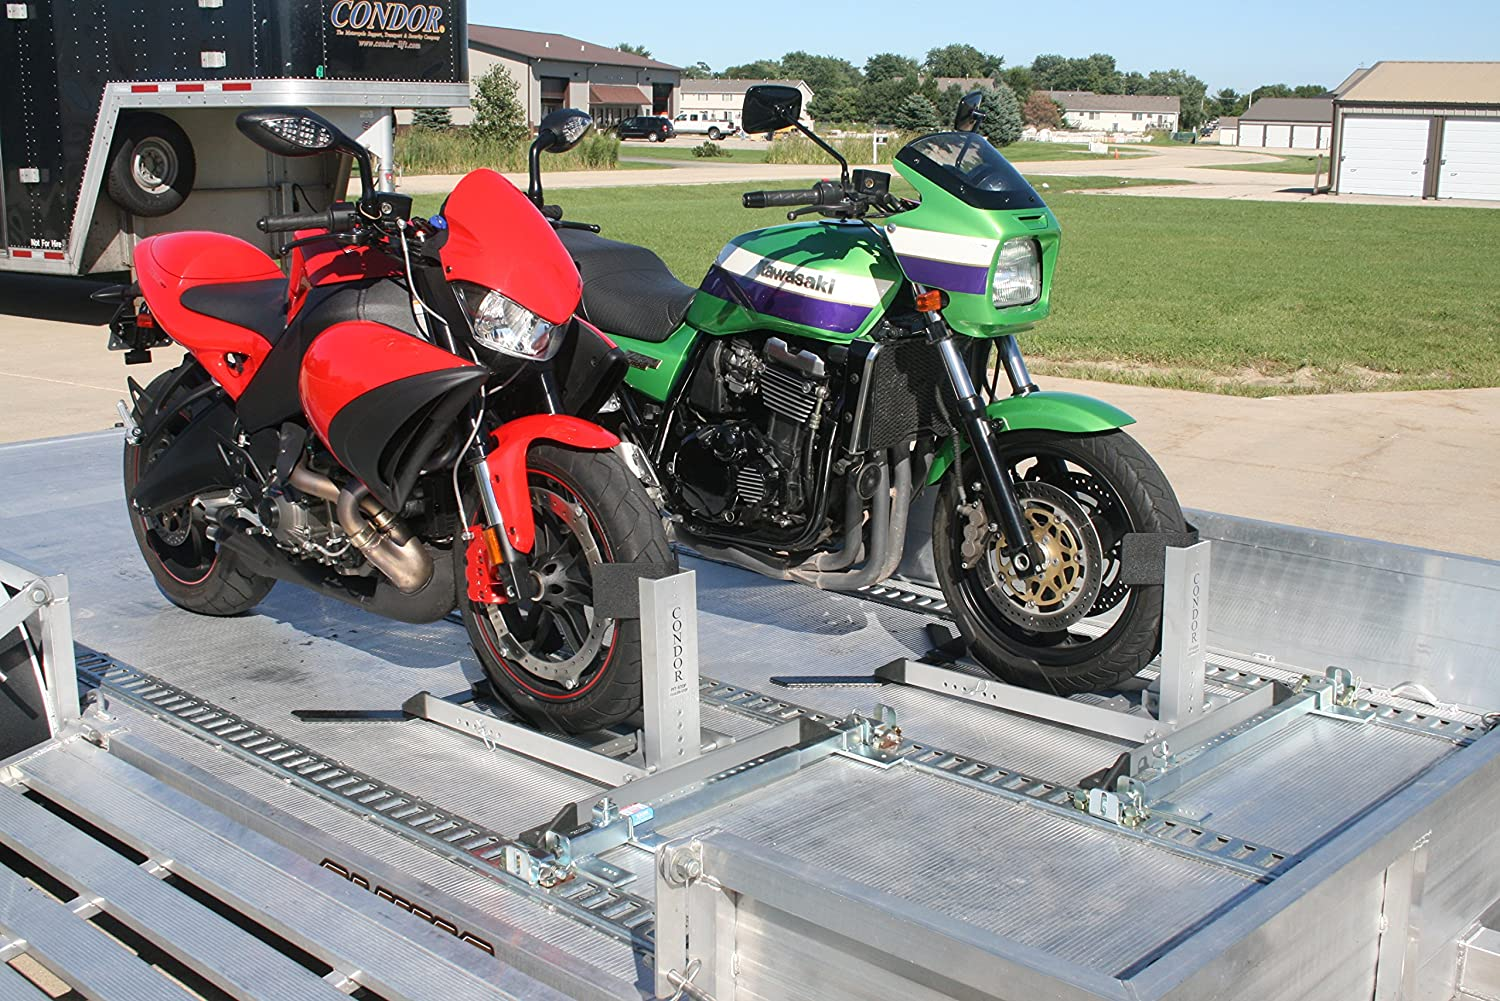 CTKP-PS2 One Bike Pit-stop Package OR CTKP-PS1 CONDOR Pit-stop Trailering Packages